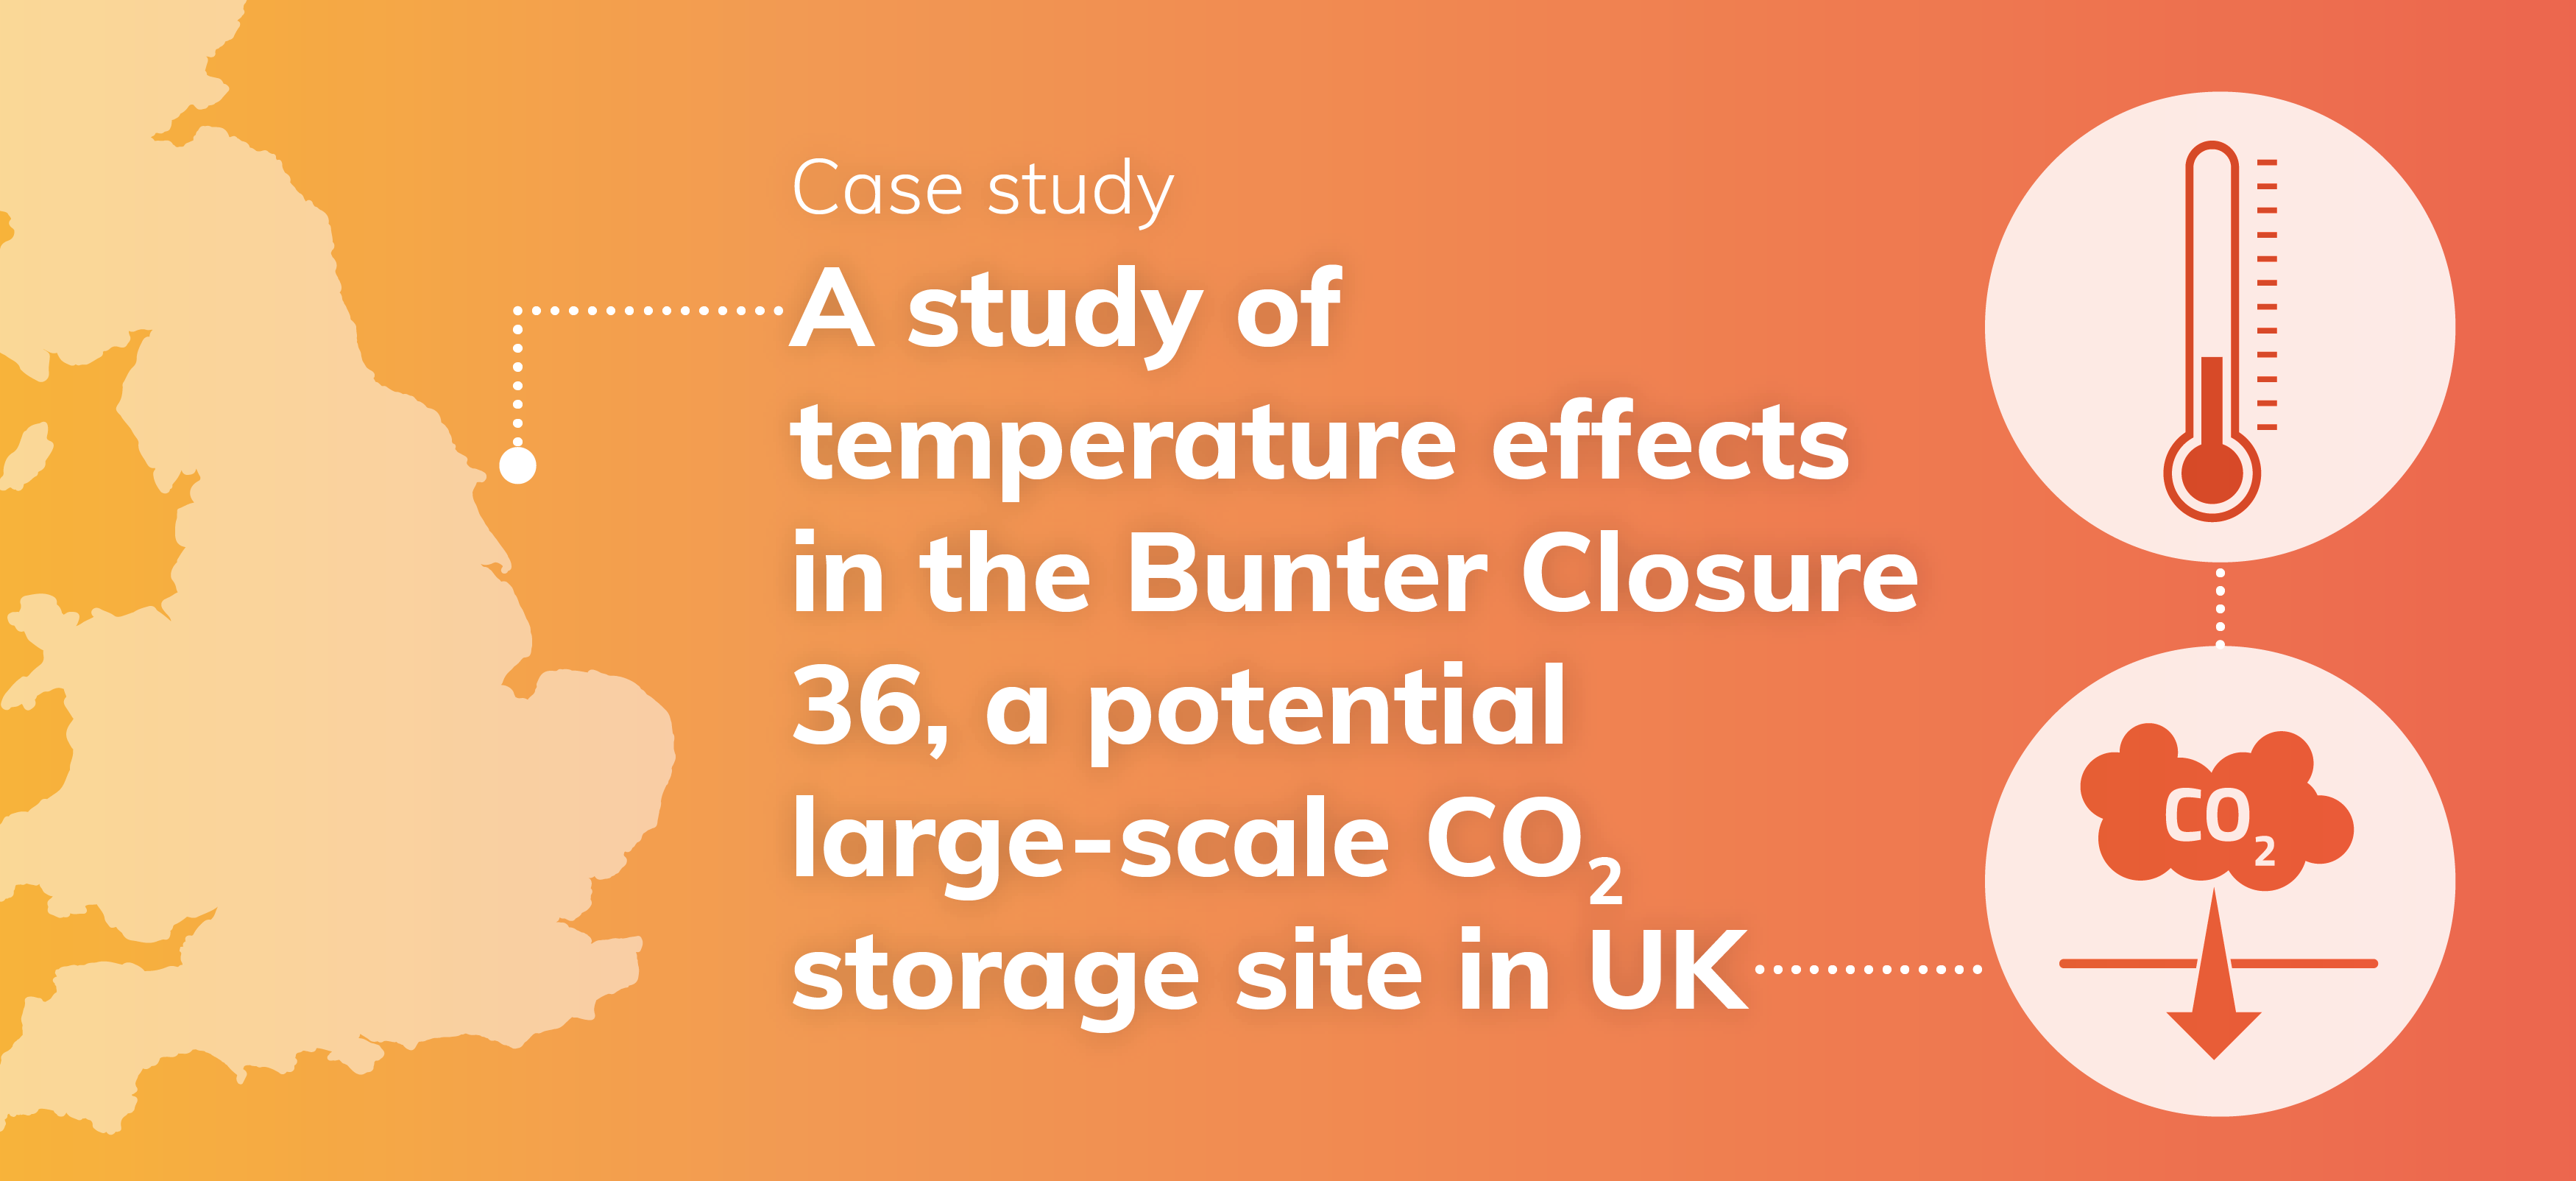 CO2 Storage - case study